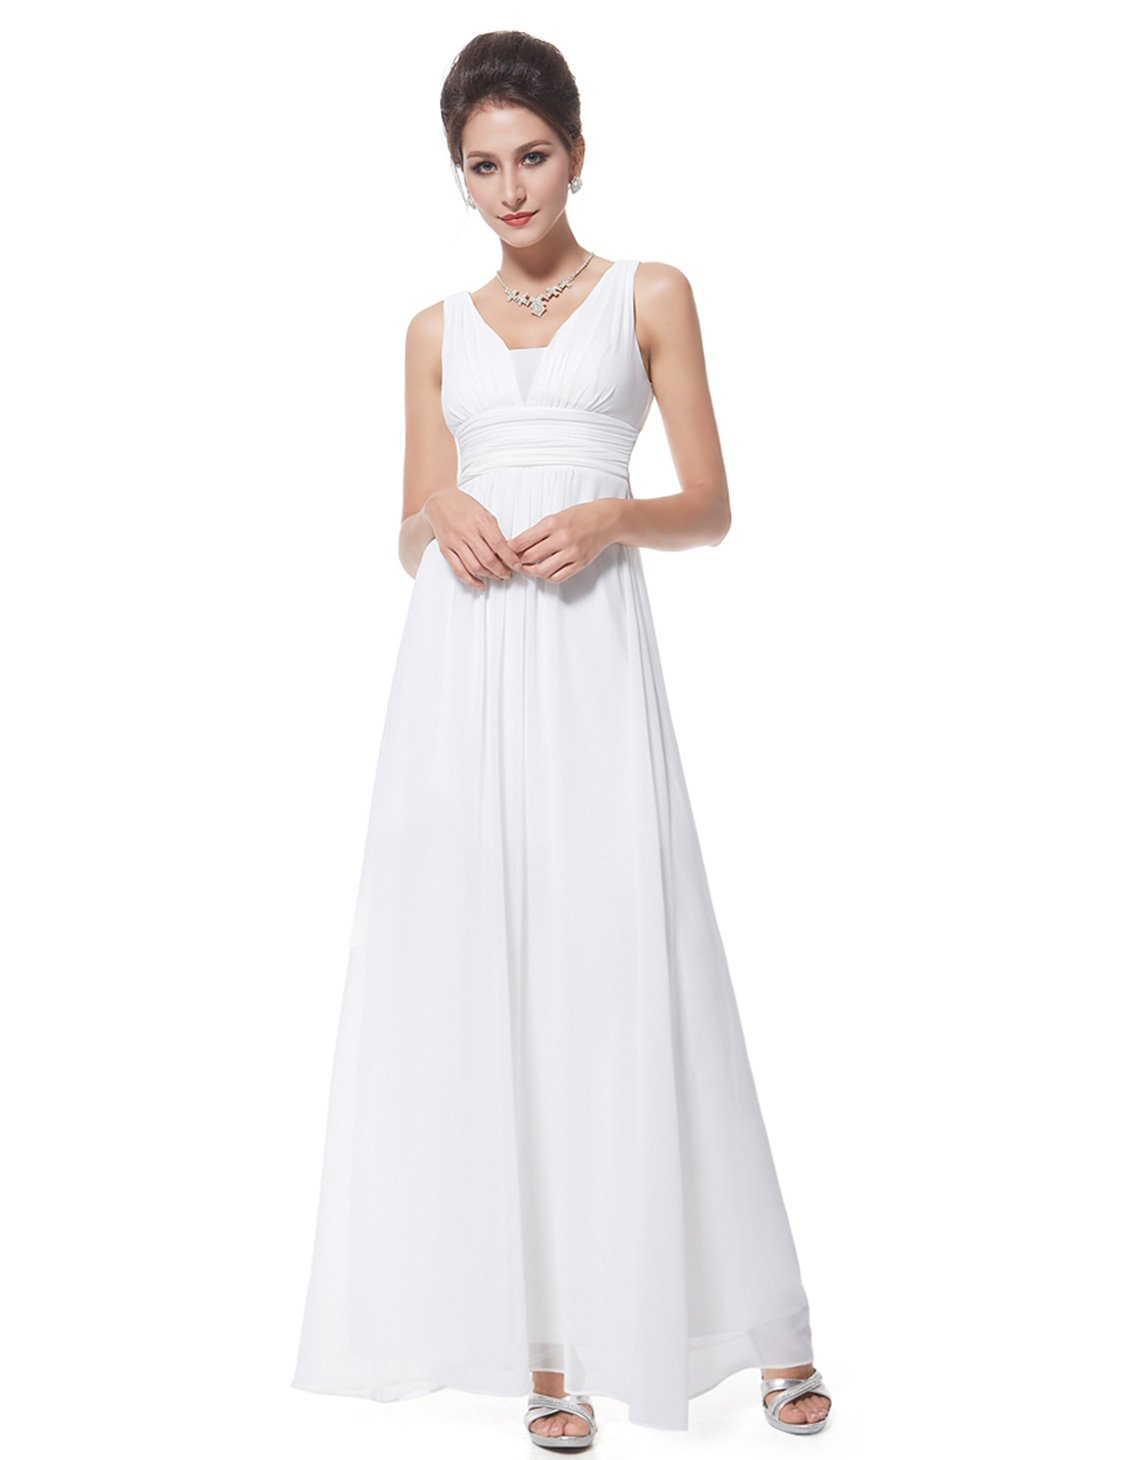 1d6d31bf4b0 Galleon - Ever-Pretty Bridesmaid Dresses Long For Women 6US White